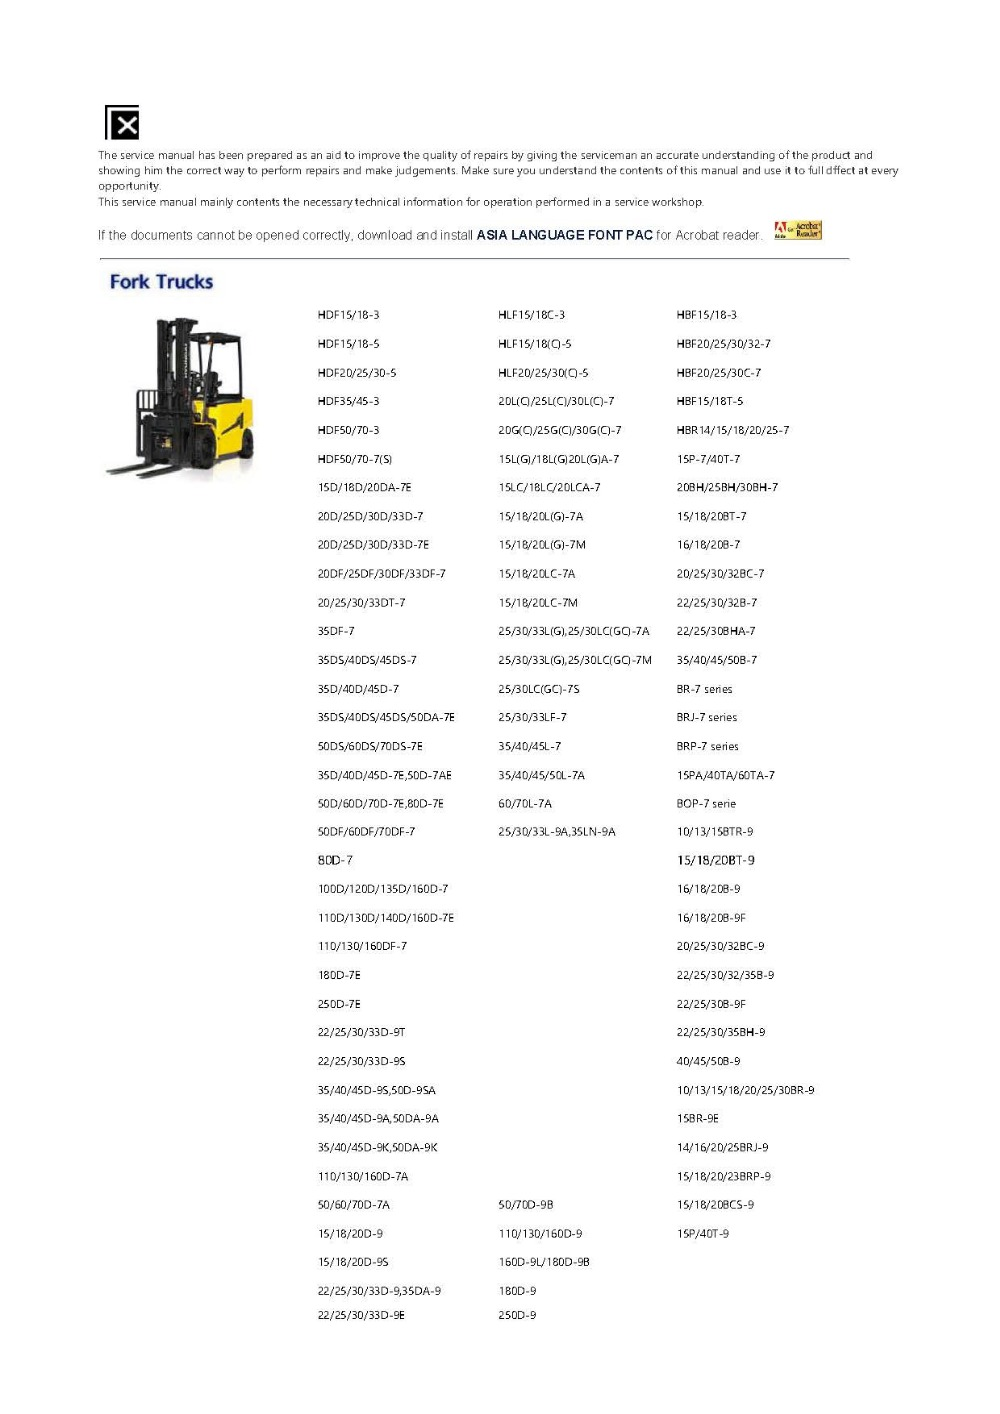 Forklift Trucks and Engine Service Manuals and Workshop Manuals for Hyundai-in  Software from Automobiles & Motorcycles on Aliexpress.com | Alibaba Group